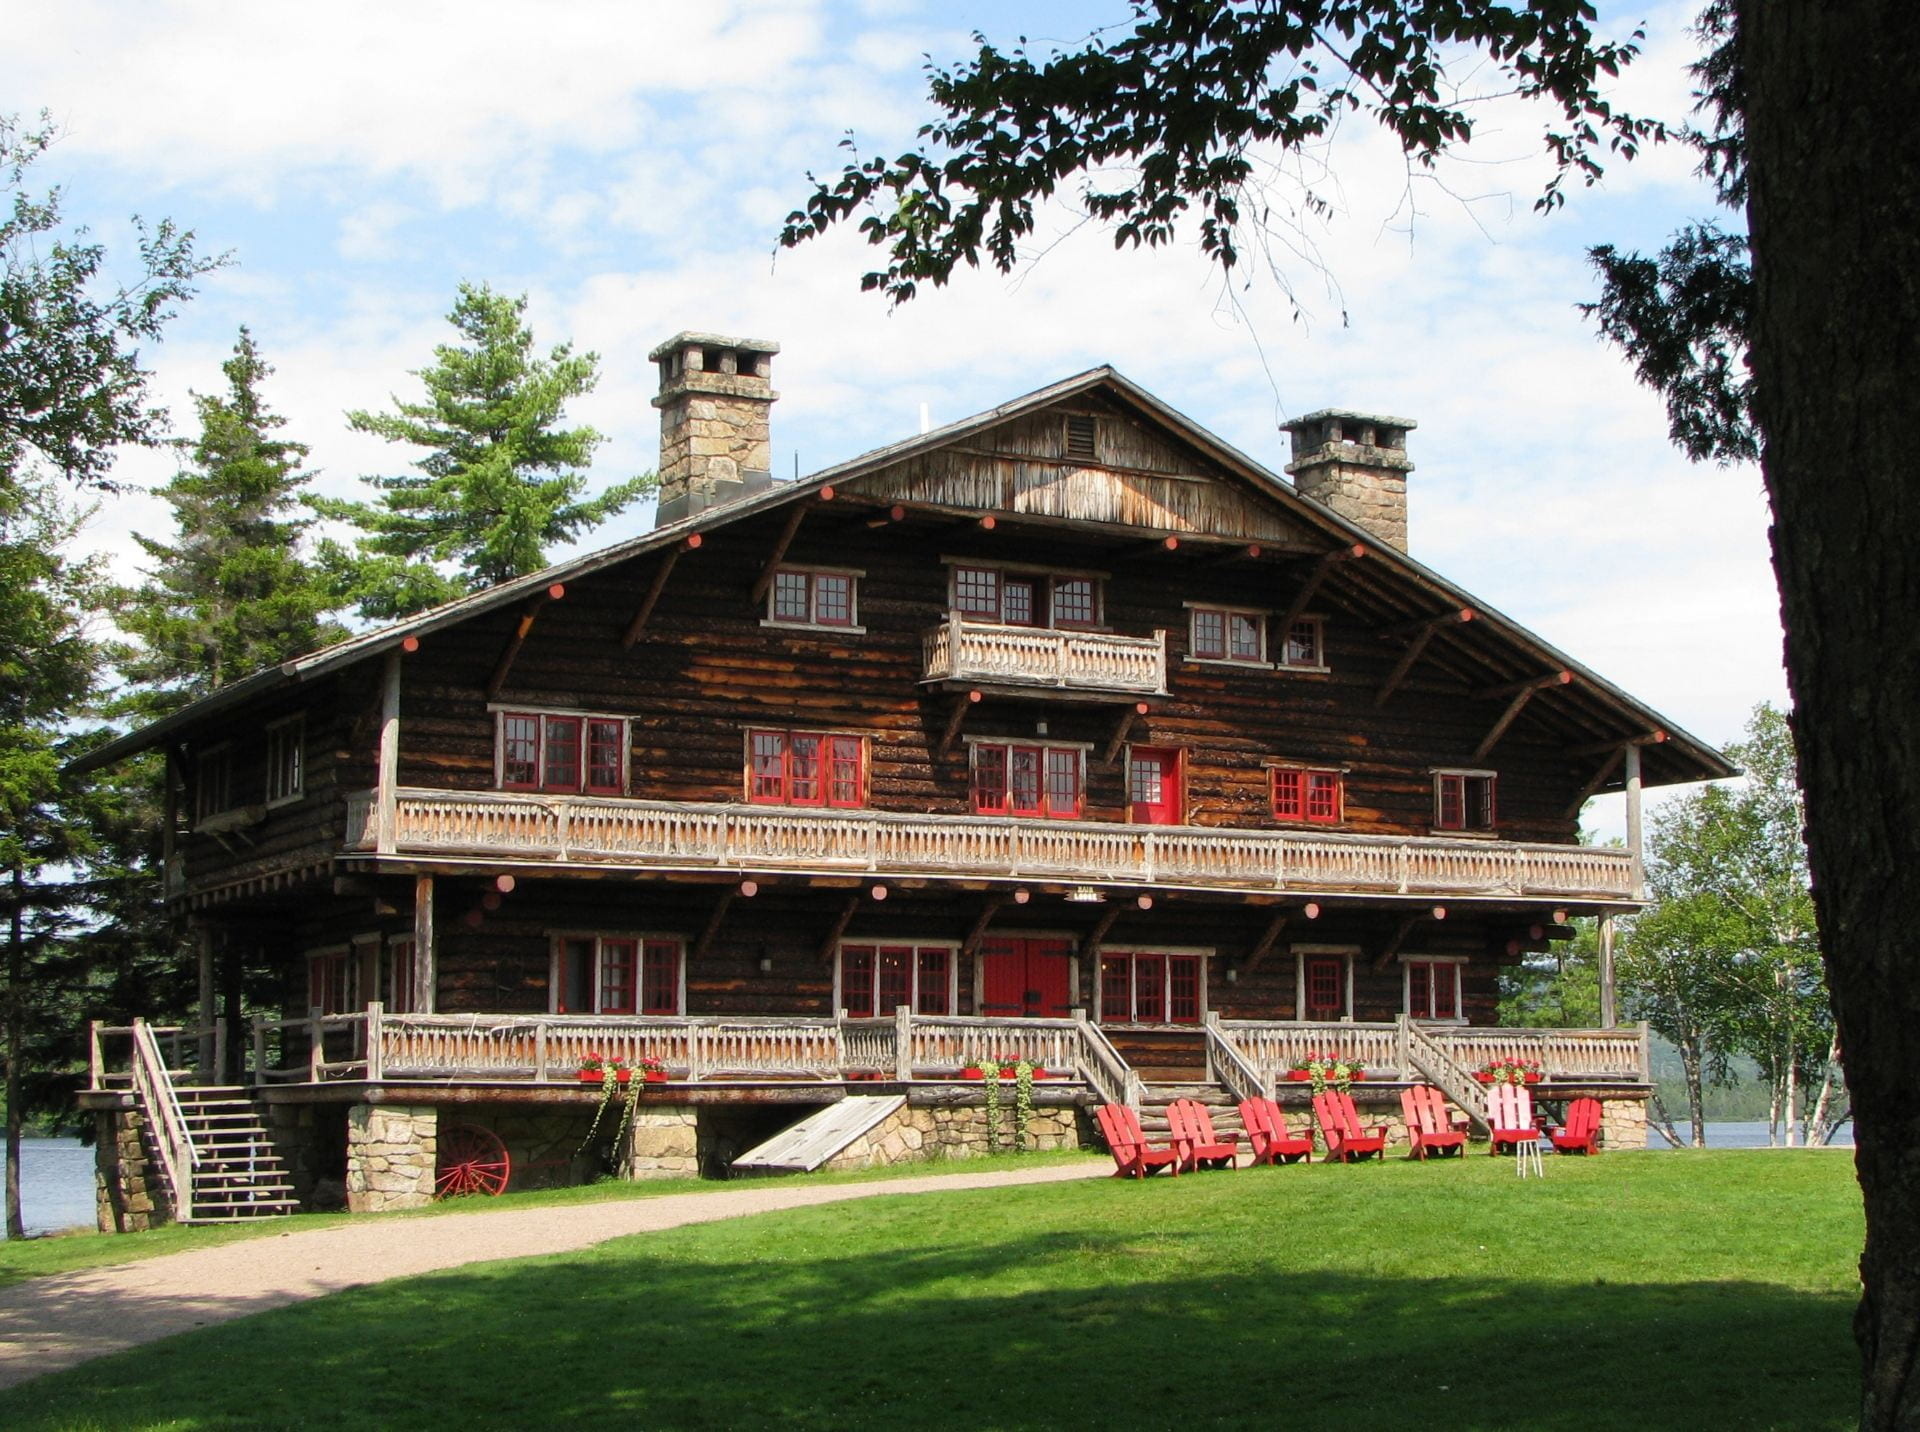 Fig. 1. Façade of building in combination of log cabin architecture with Swiss chalet influences.